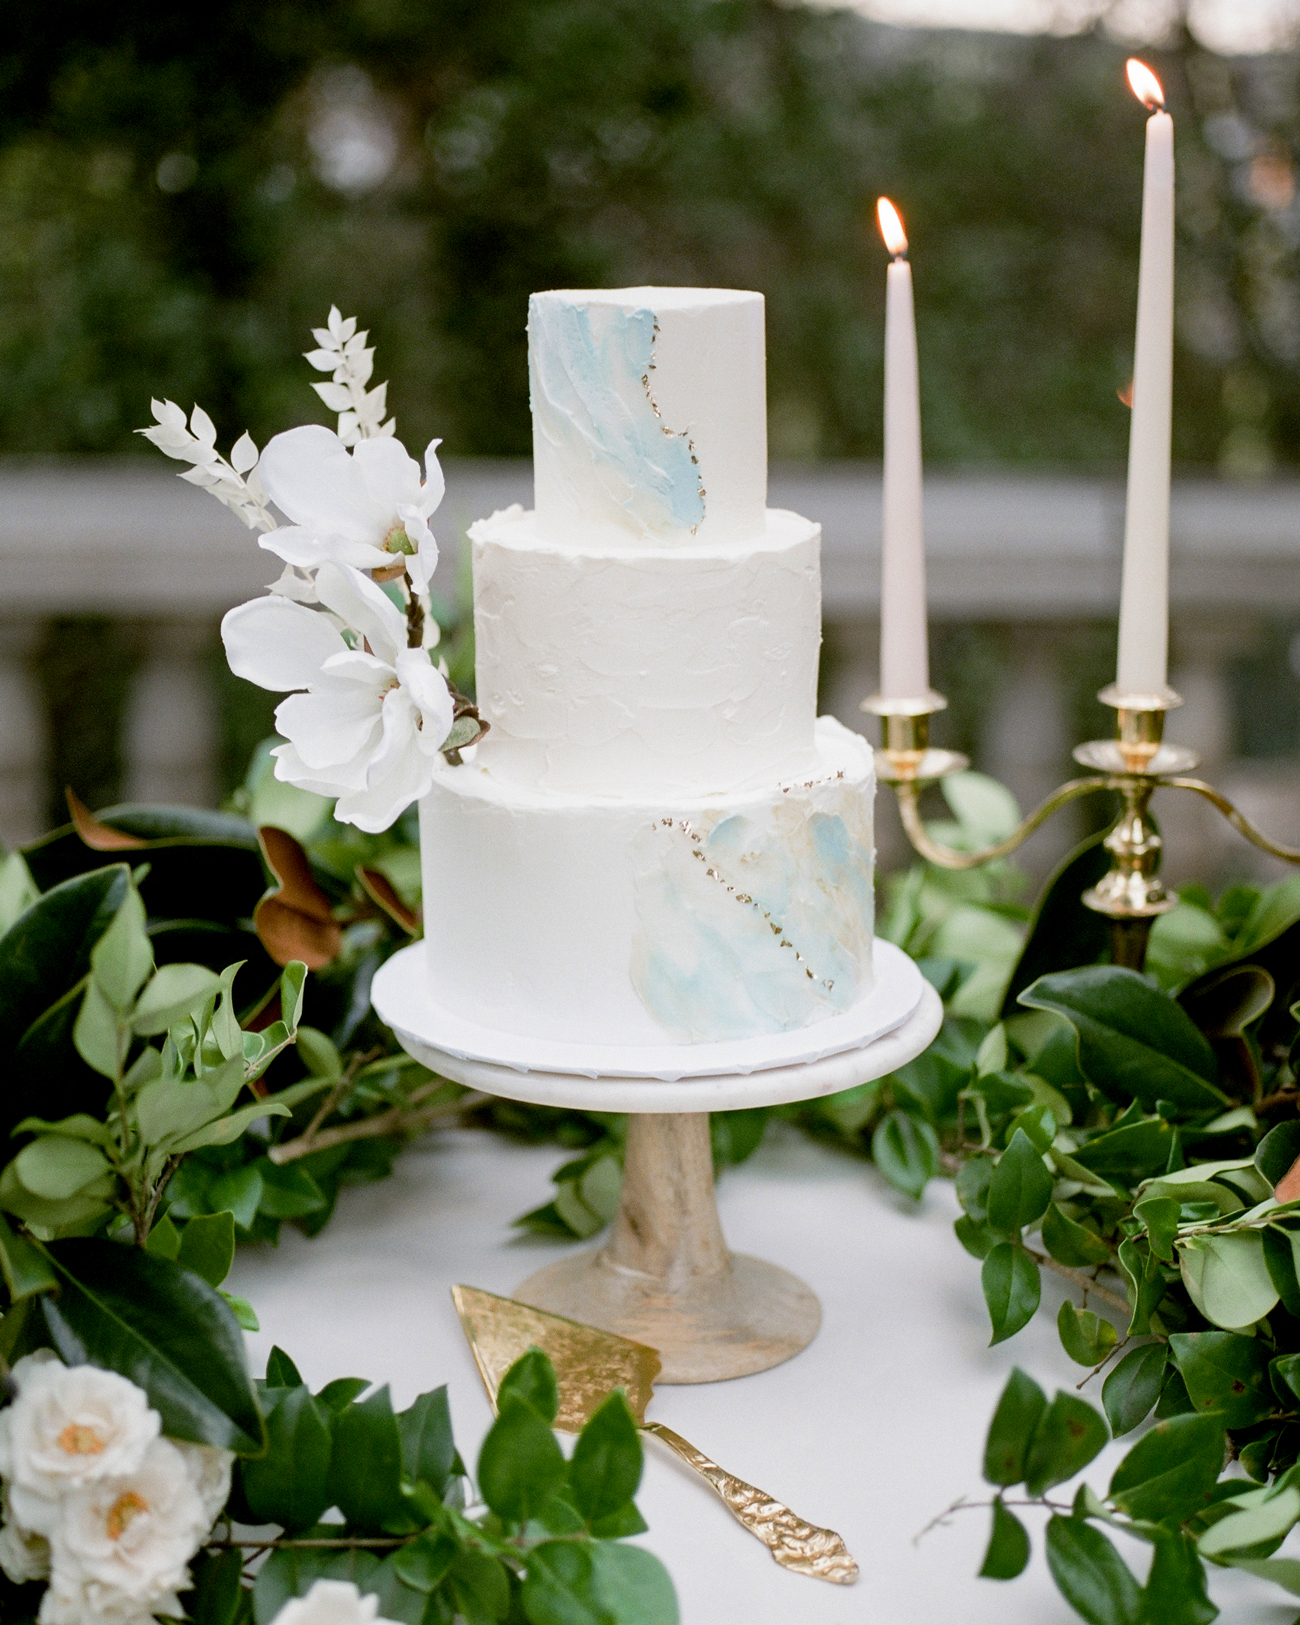 Marbled Tiered wedding cake